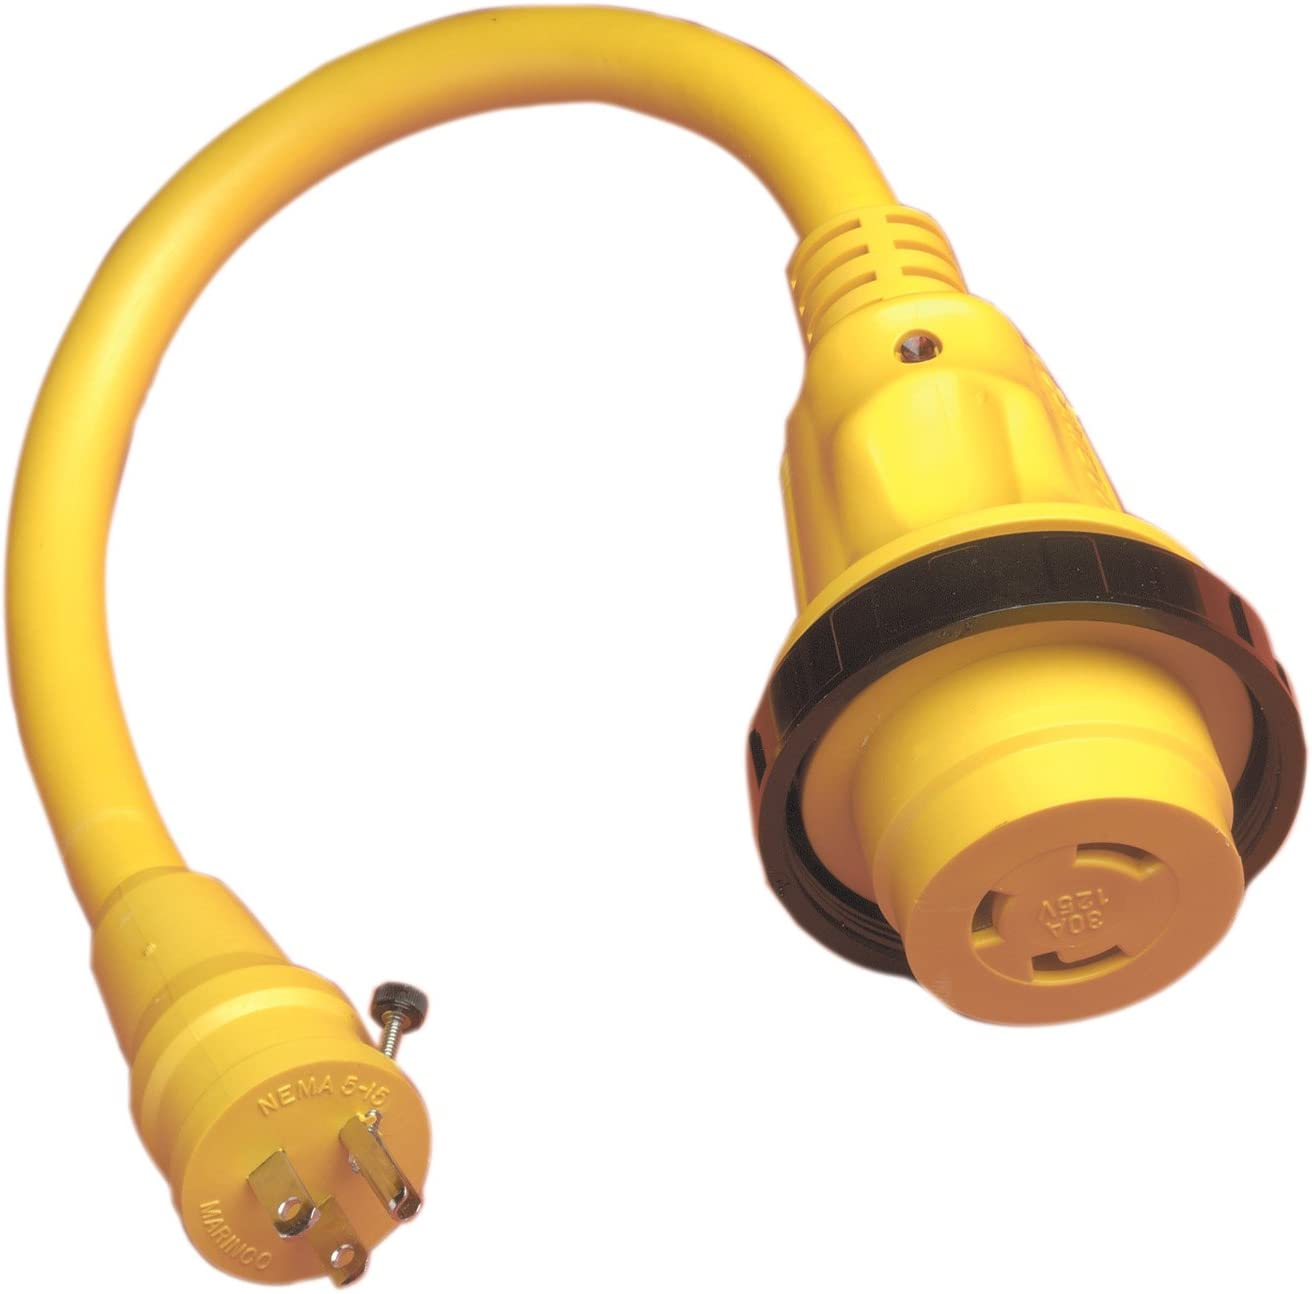 Marinco Marine Electrical Shore Power Pigtail Adapter, Yellow : Boating Shore Power Adapters : Sports & Outdoors